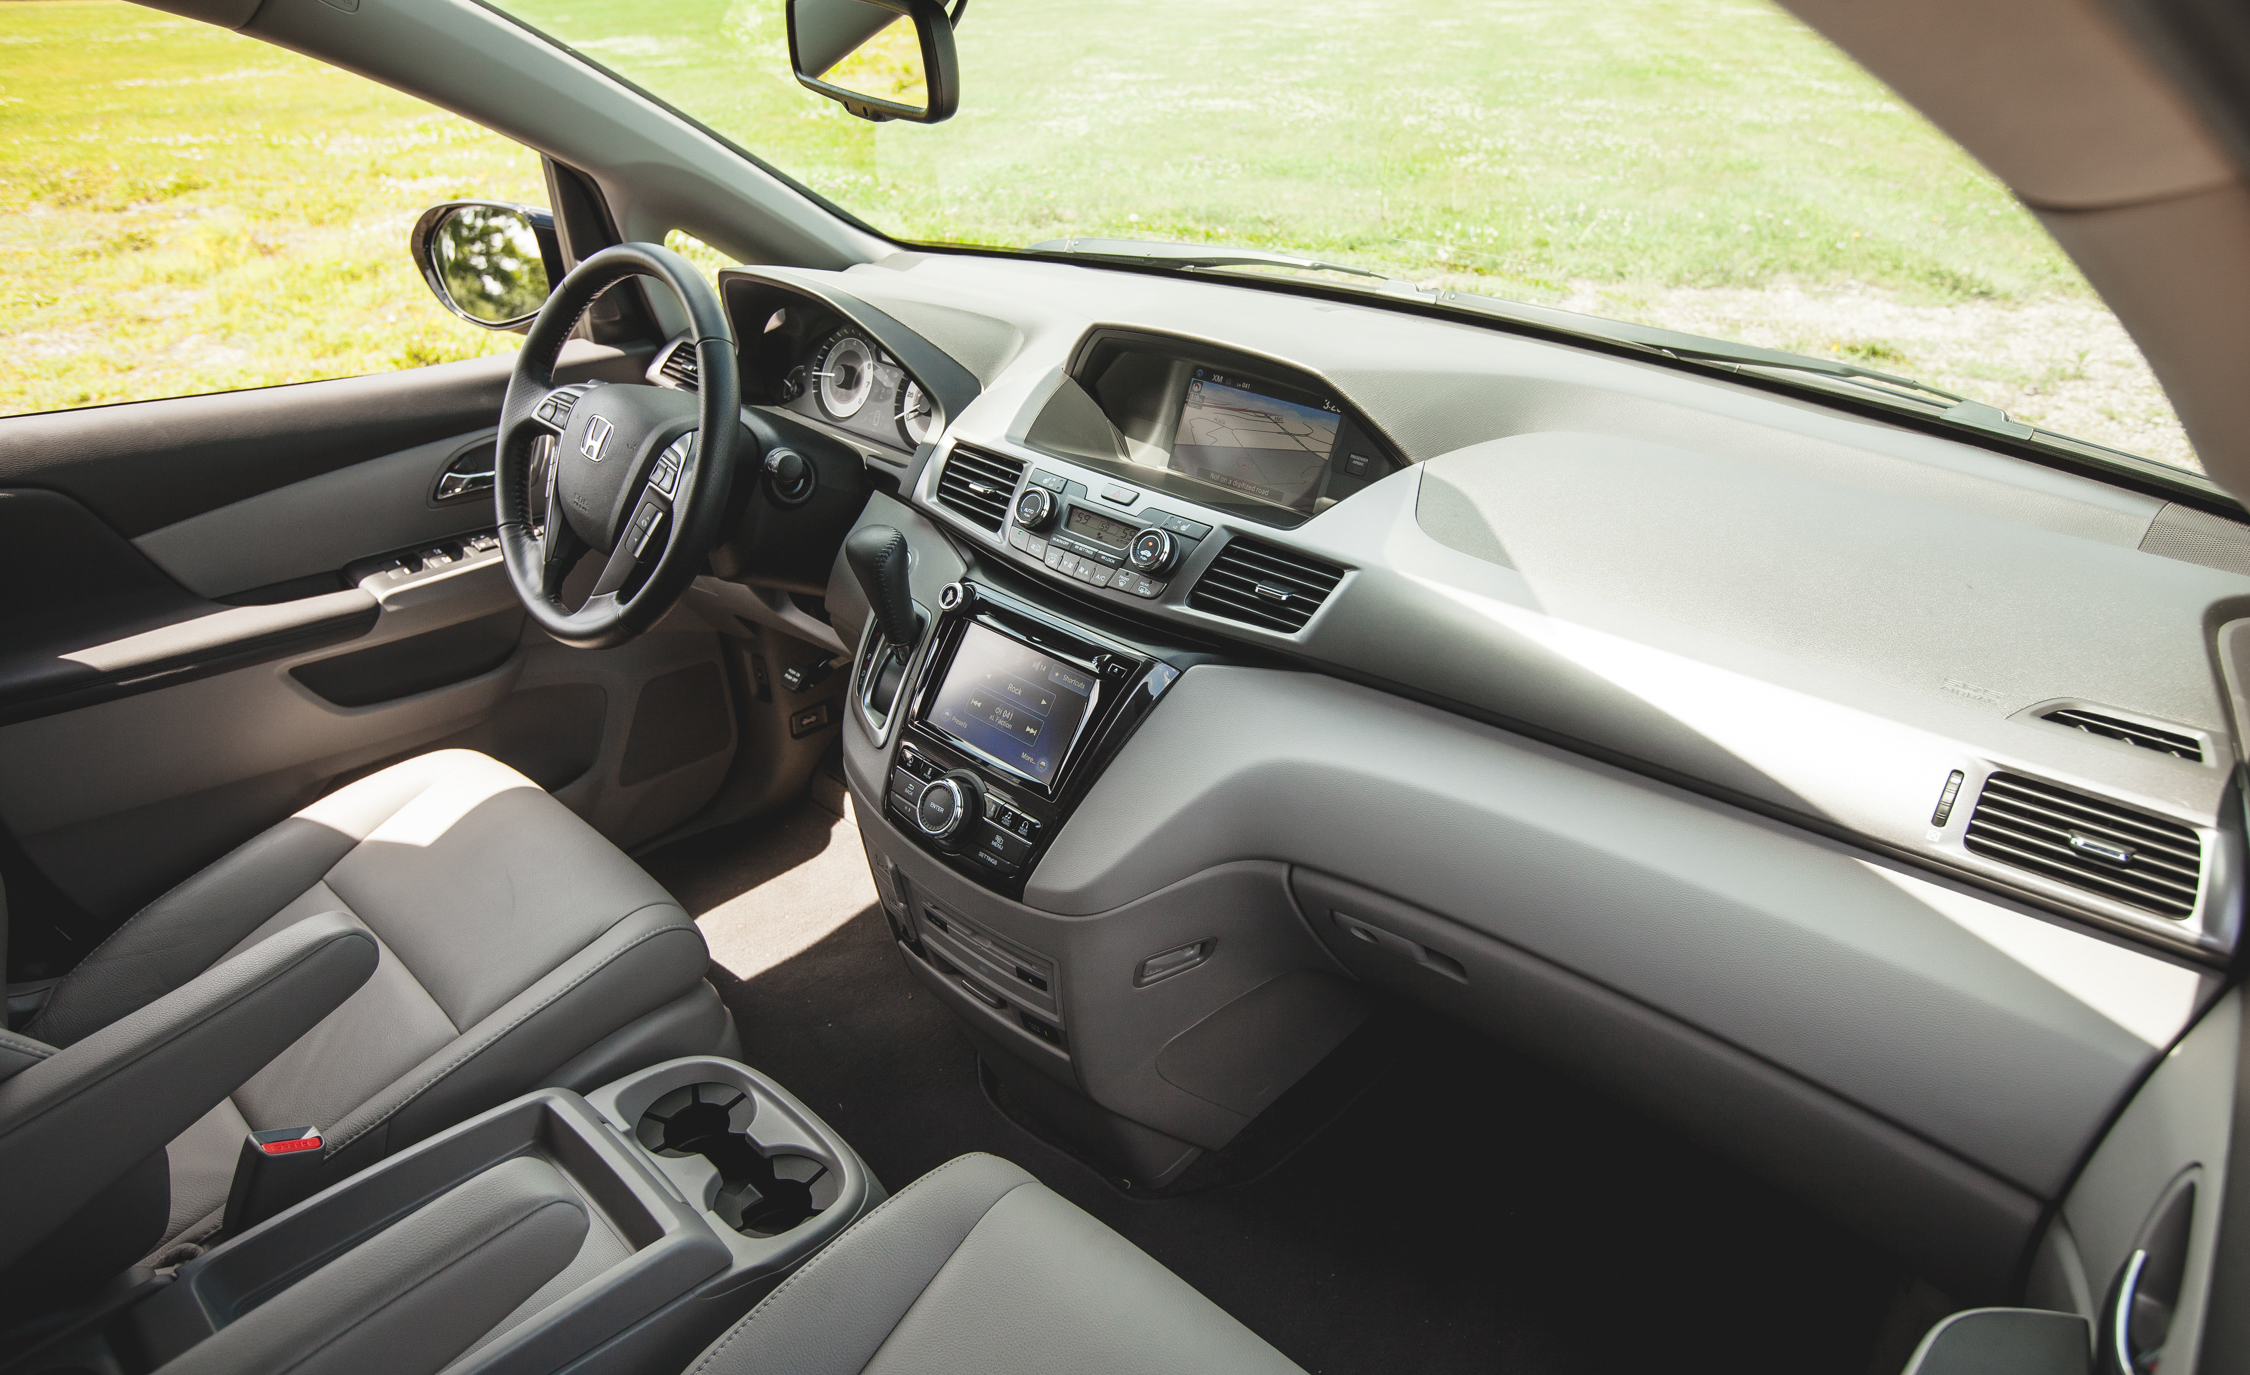 2014 Honda Odyssey Touring Elite Interior (Photo 13 of 19)